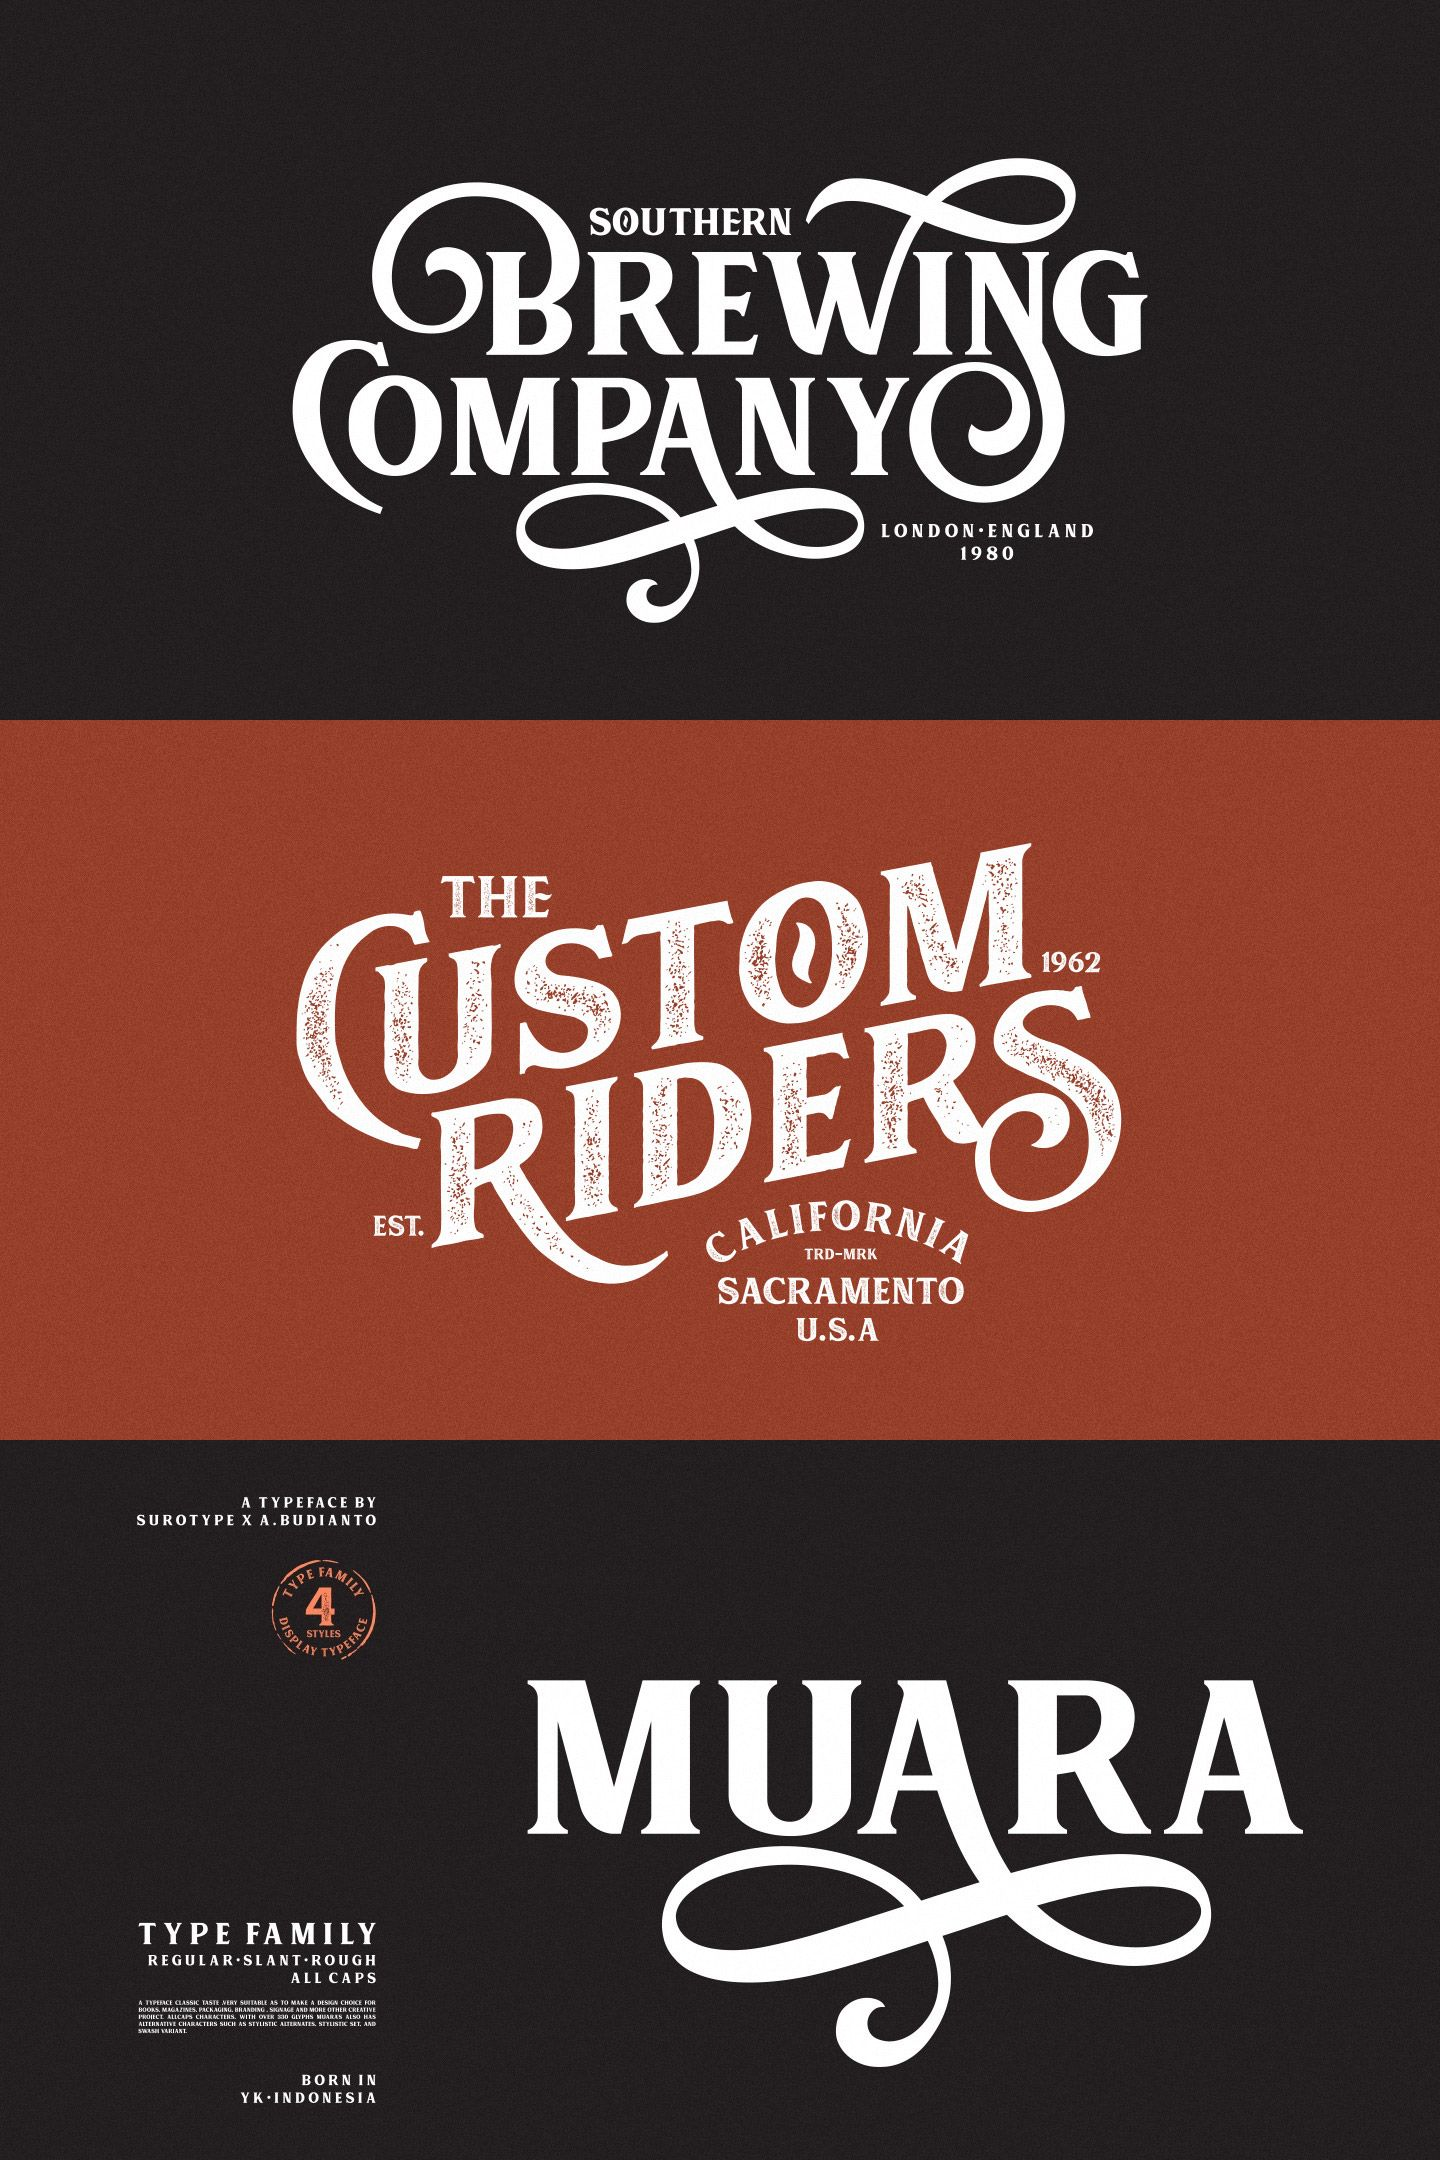 MUARA font A typeface with a classic look, very suitable